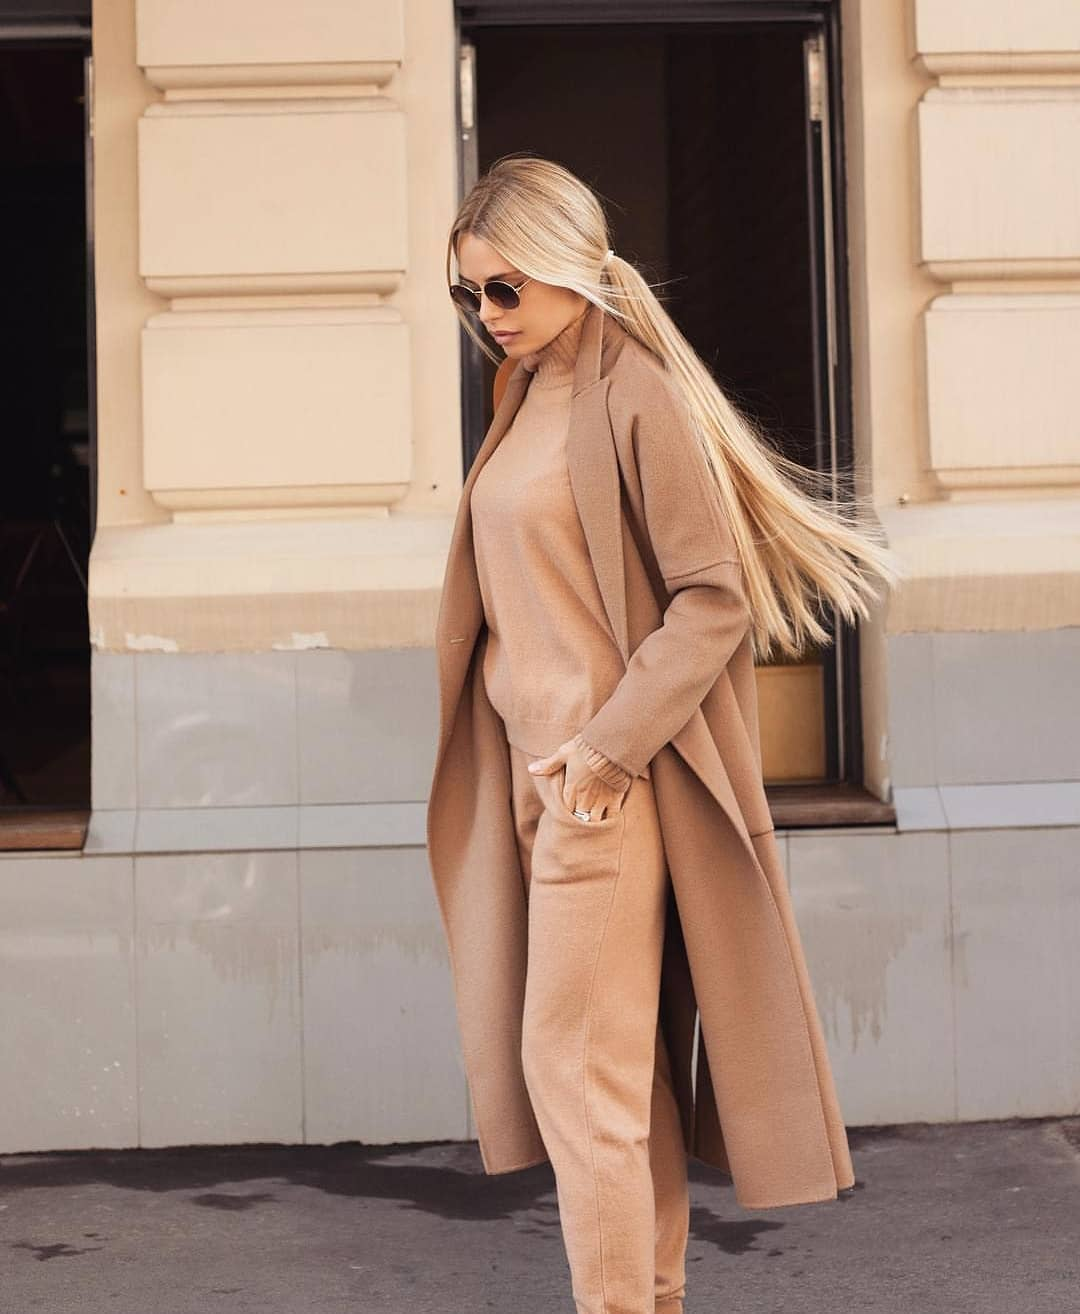 Camel Coat With Matching Color Sweater And Pants: Fall Monochrome Essentials 2019